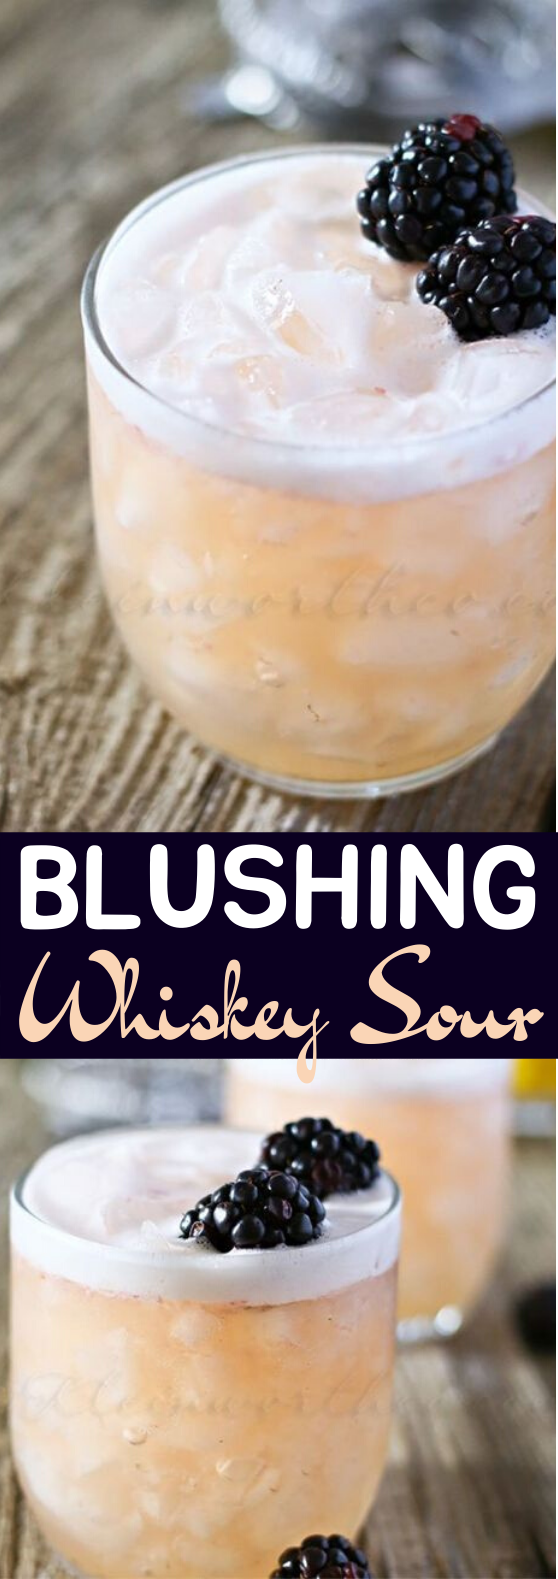 Blushing Whiskey Sour #drinks #alcohol #cocktails #adult #beverages